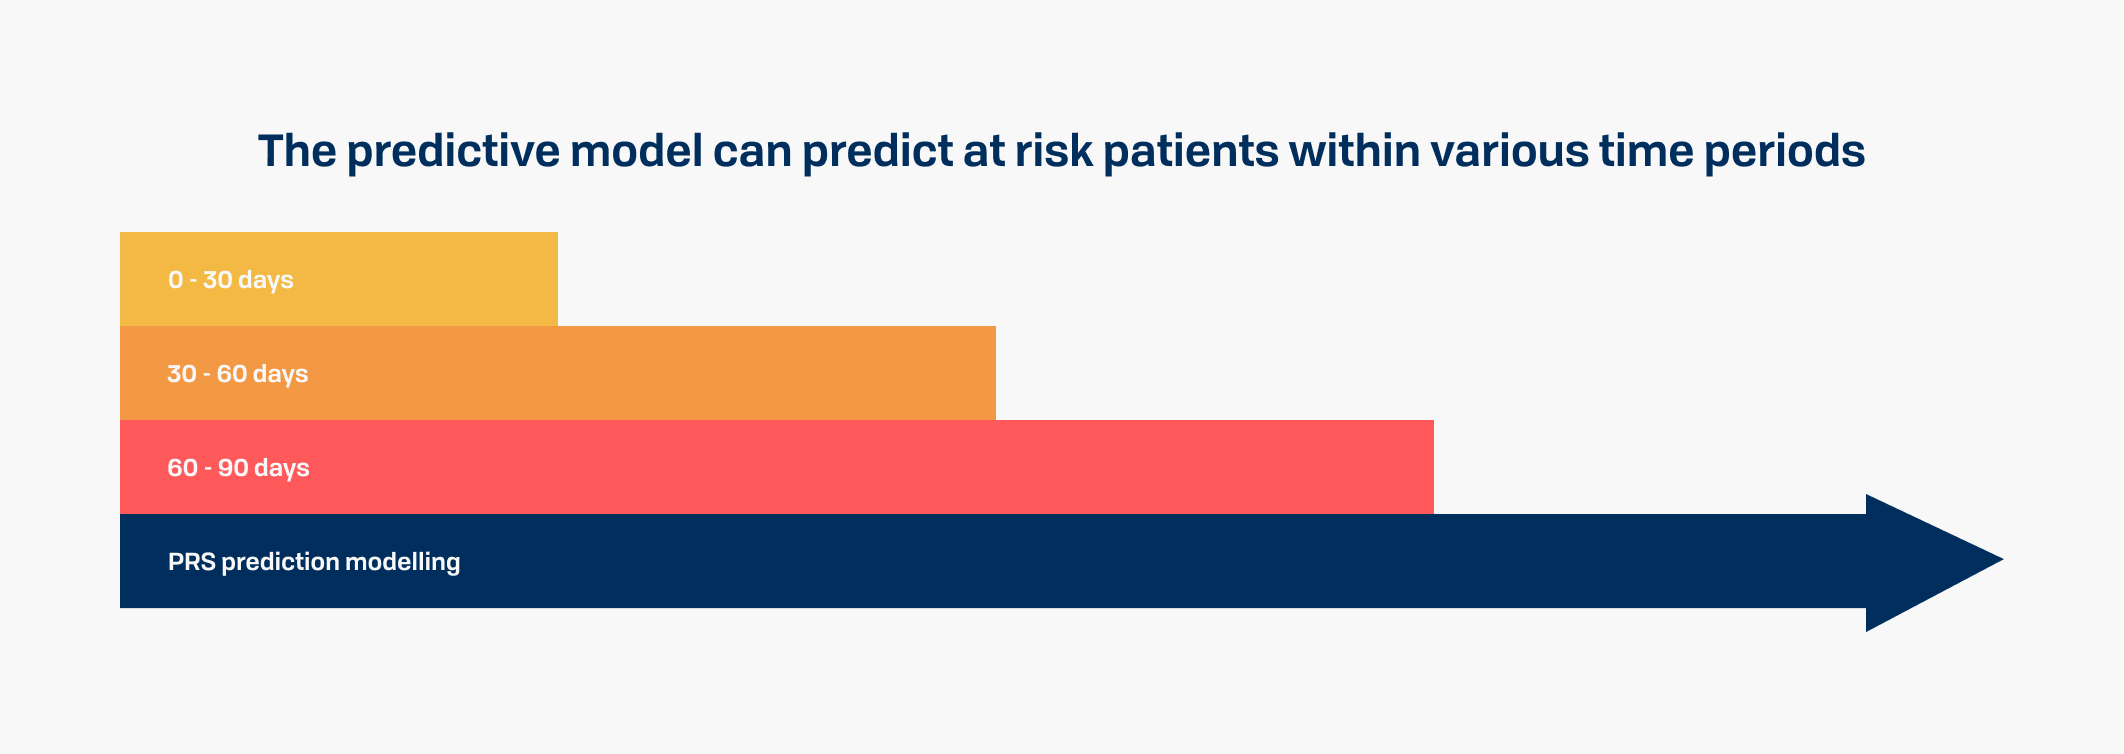 The predictive model can predict at risk patients within various time periods